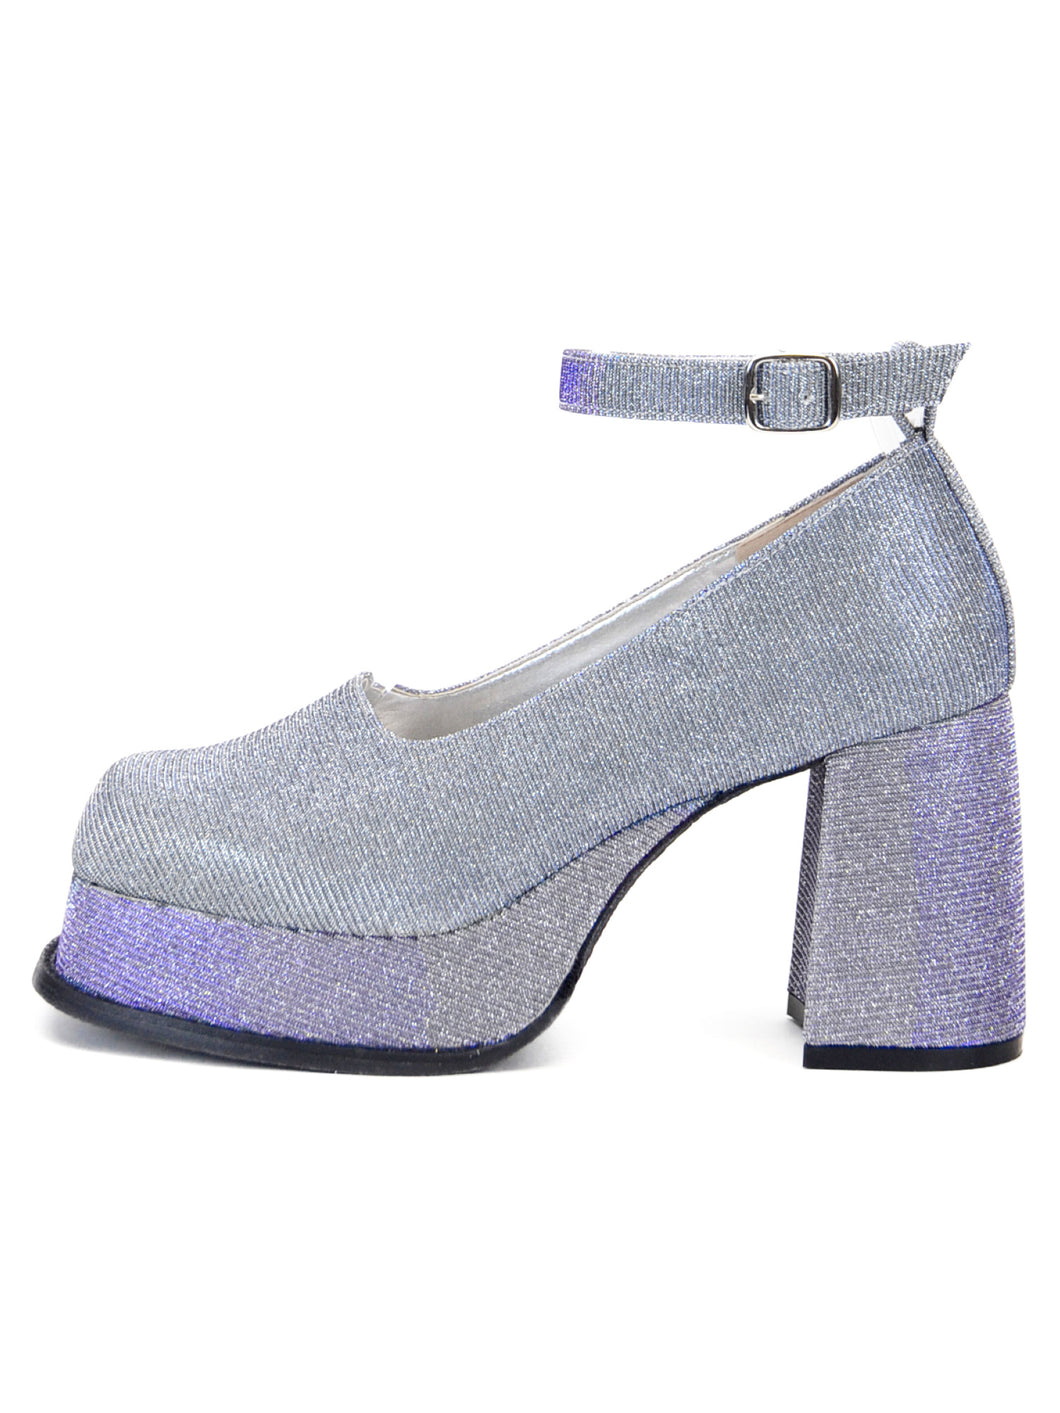 [OK×ESPERANZA] Retro Platform Pumps(DISCO BALL)